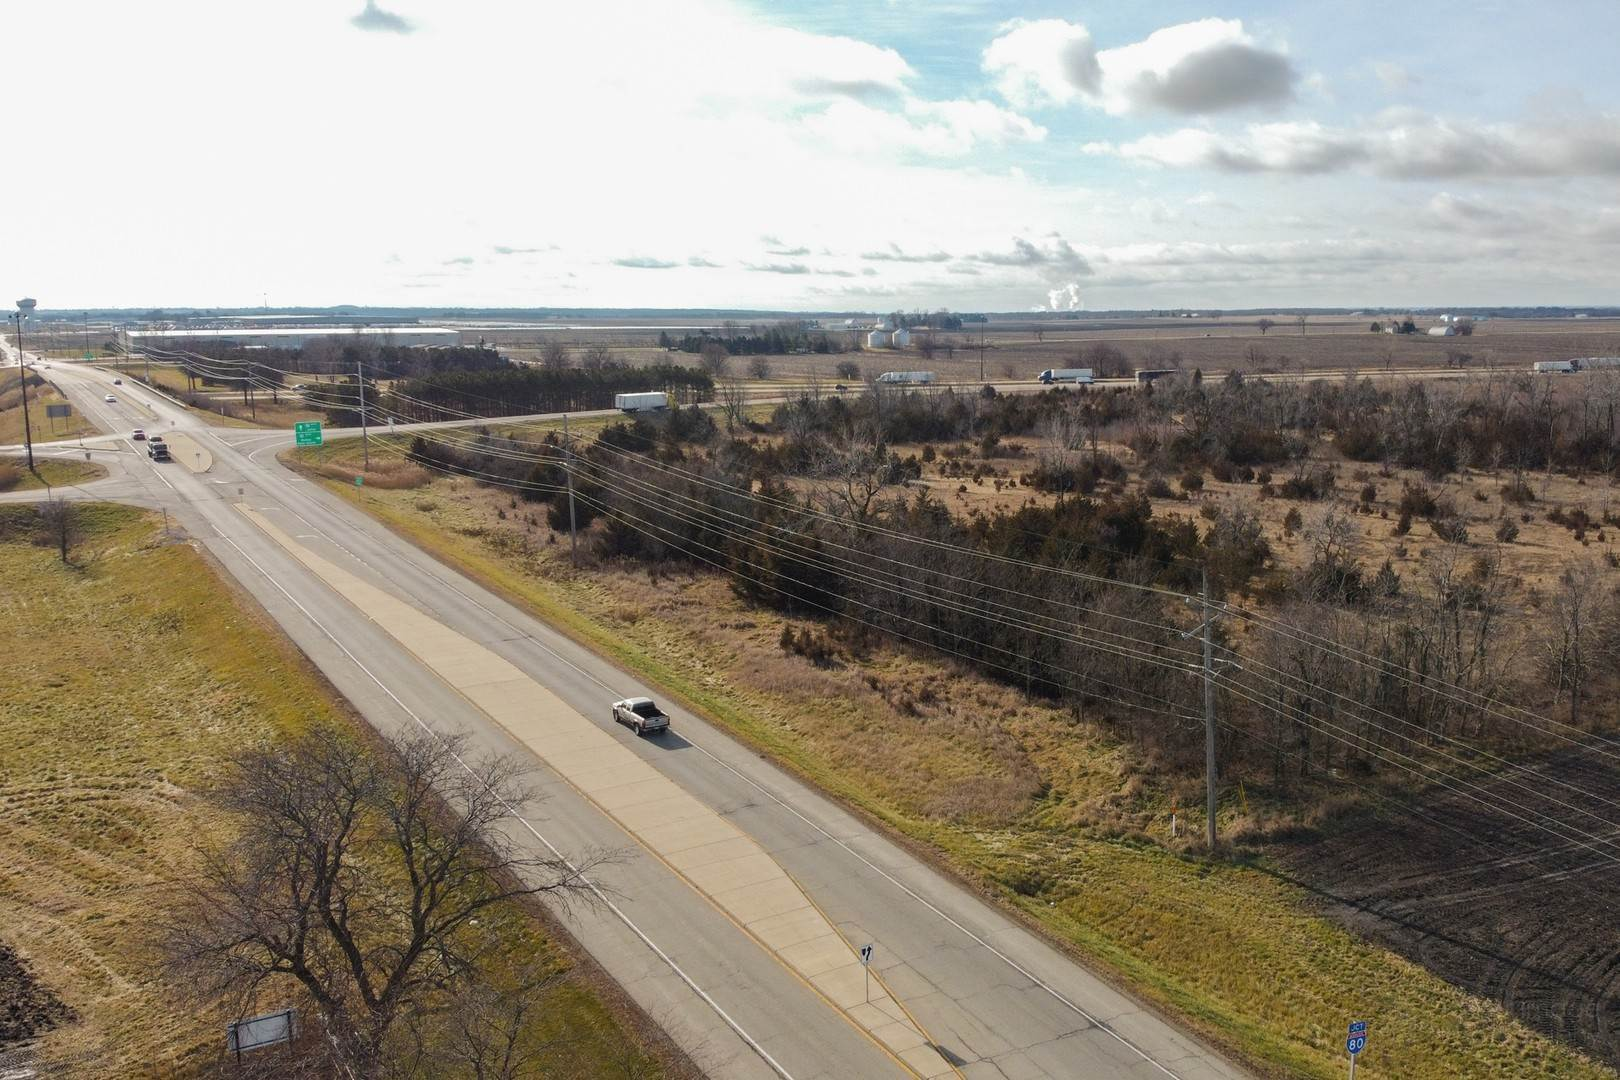 Land for Sale at Nw Rt 80 & Rt 89 Ladd, Illinois 61329 United States